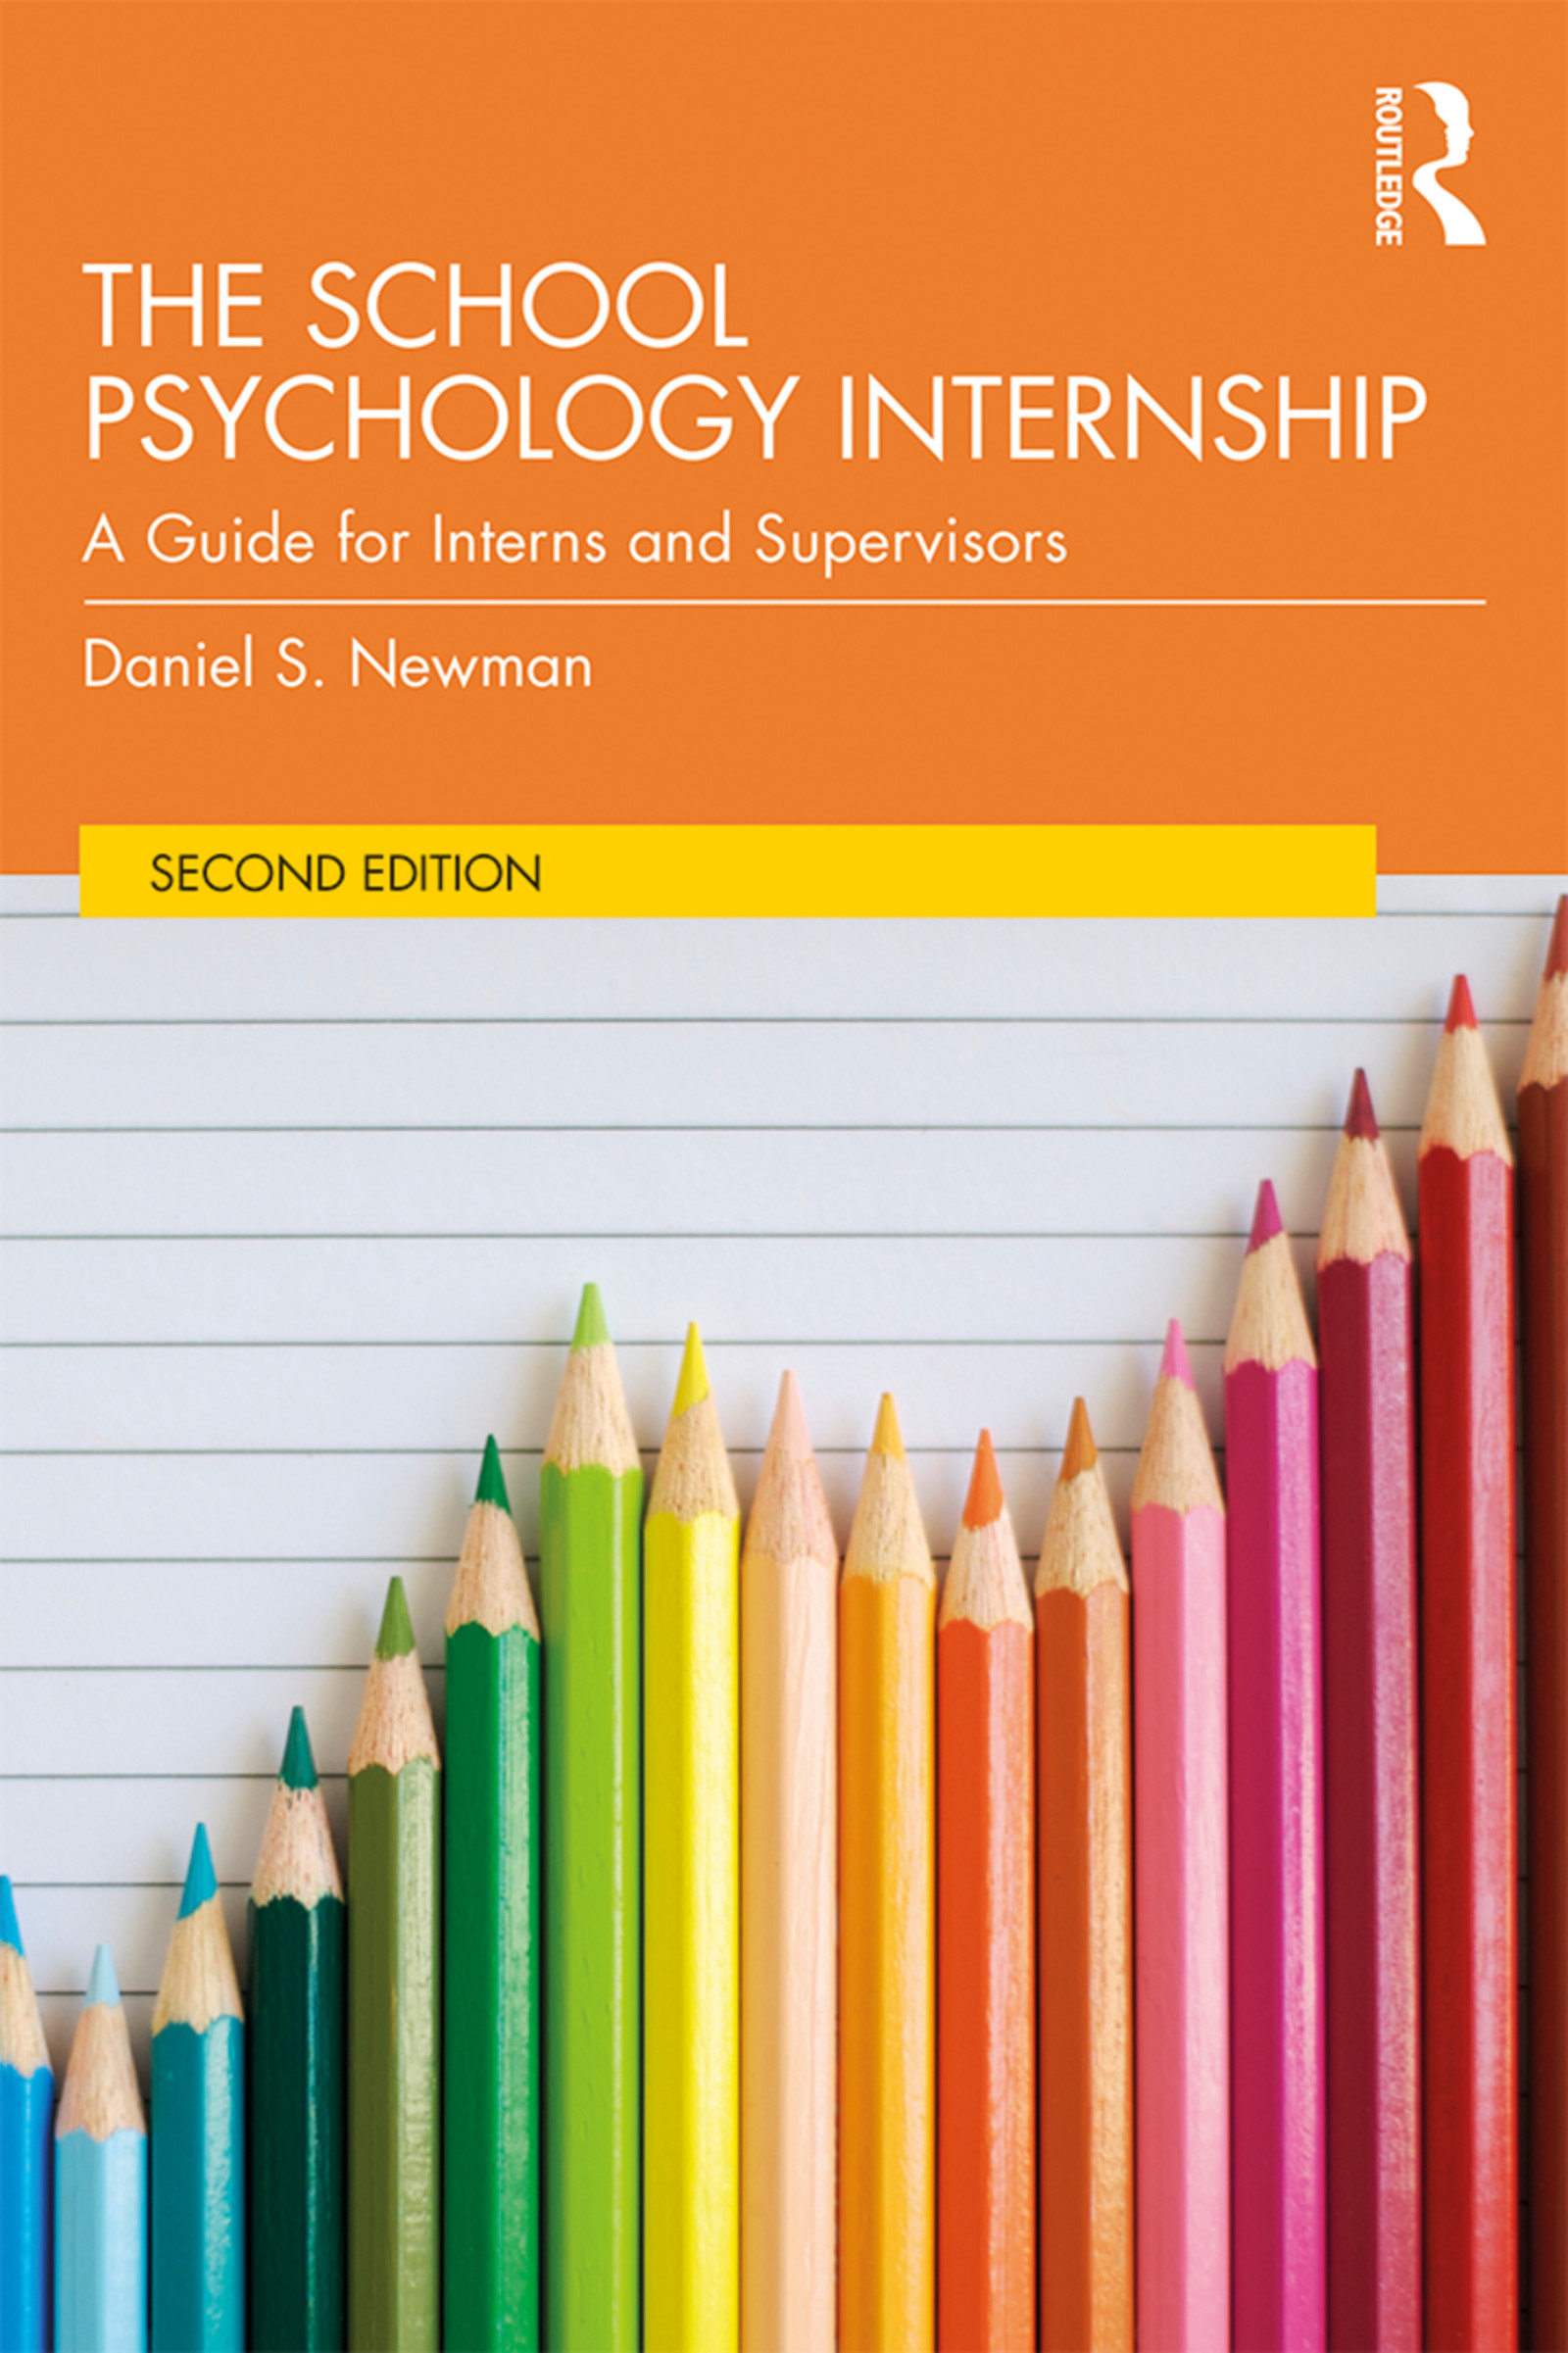 The School Psychology Internship: A Guide for Interns and Supervisors book cover